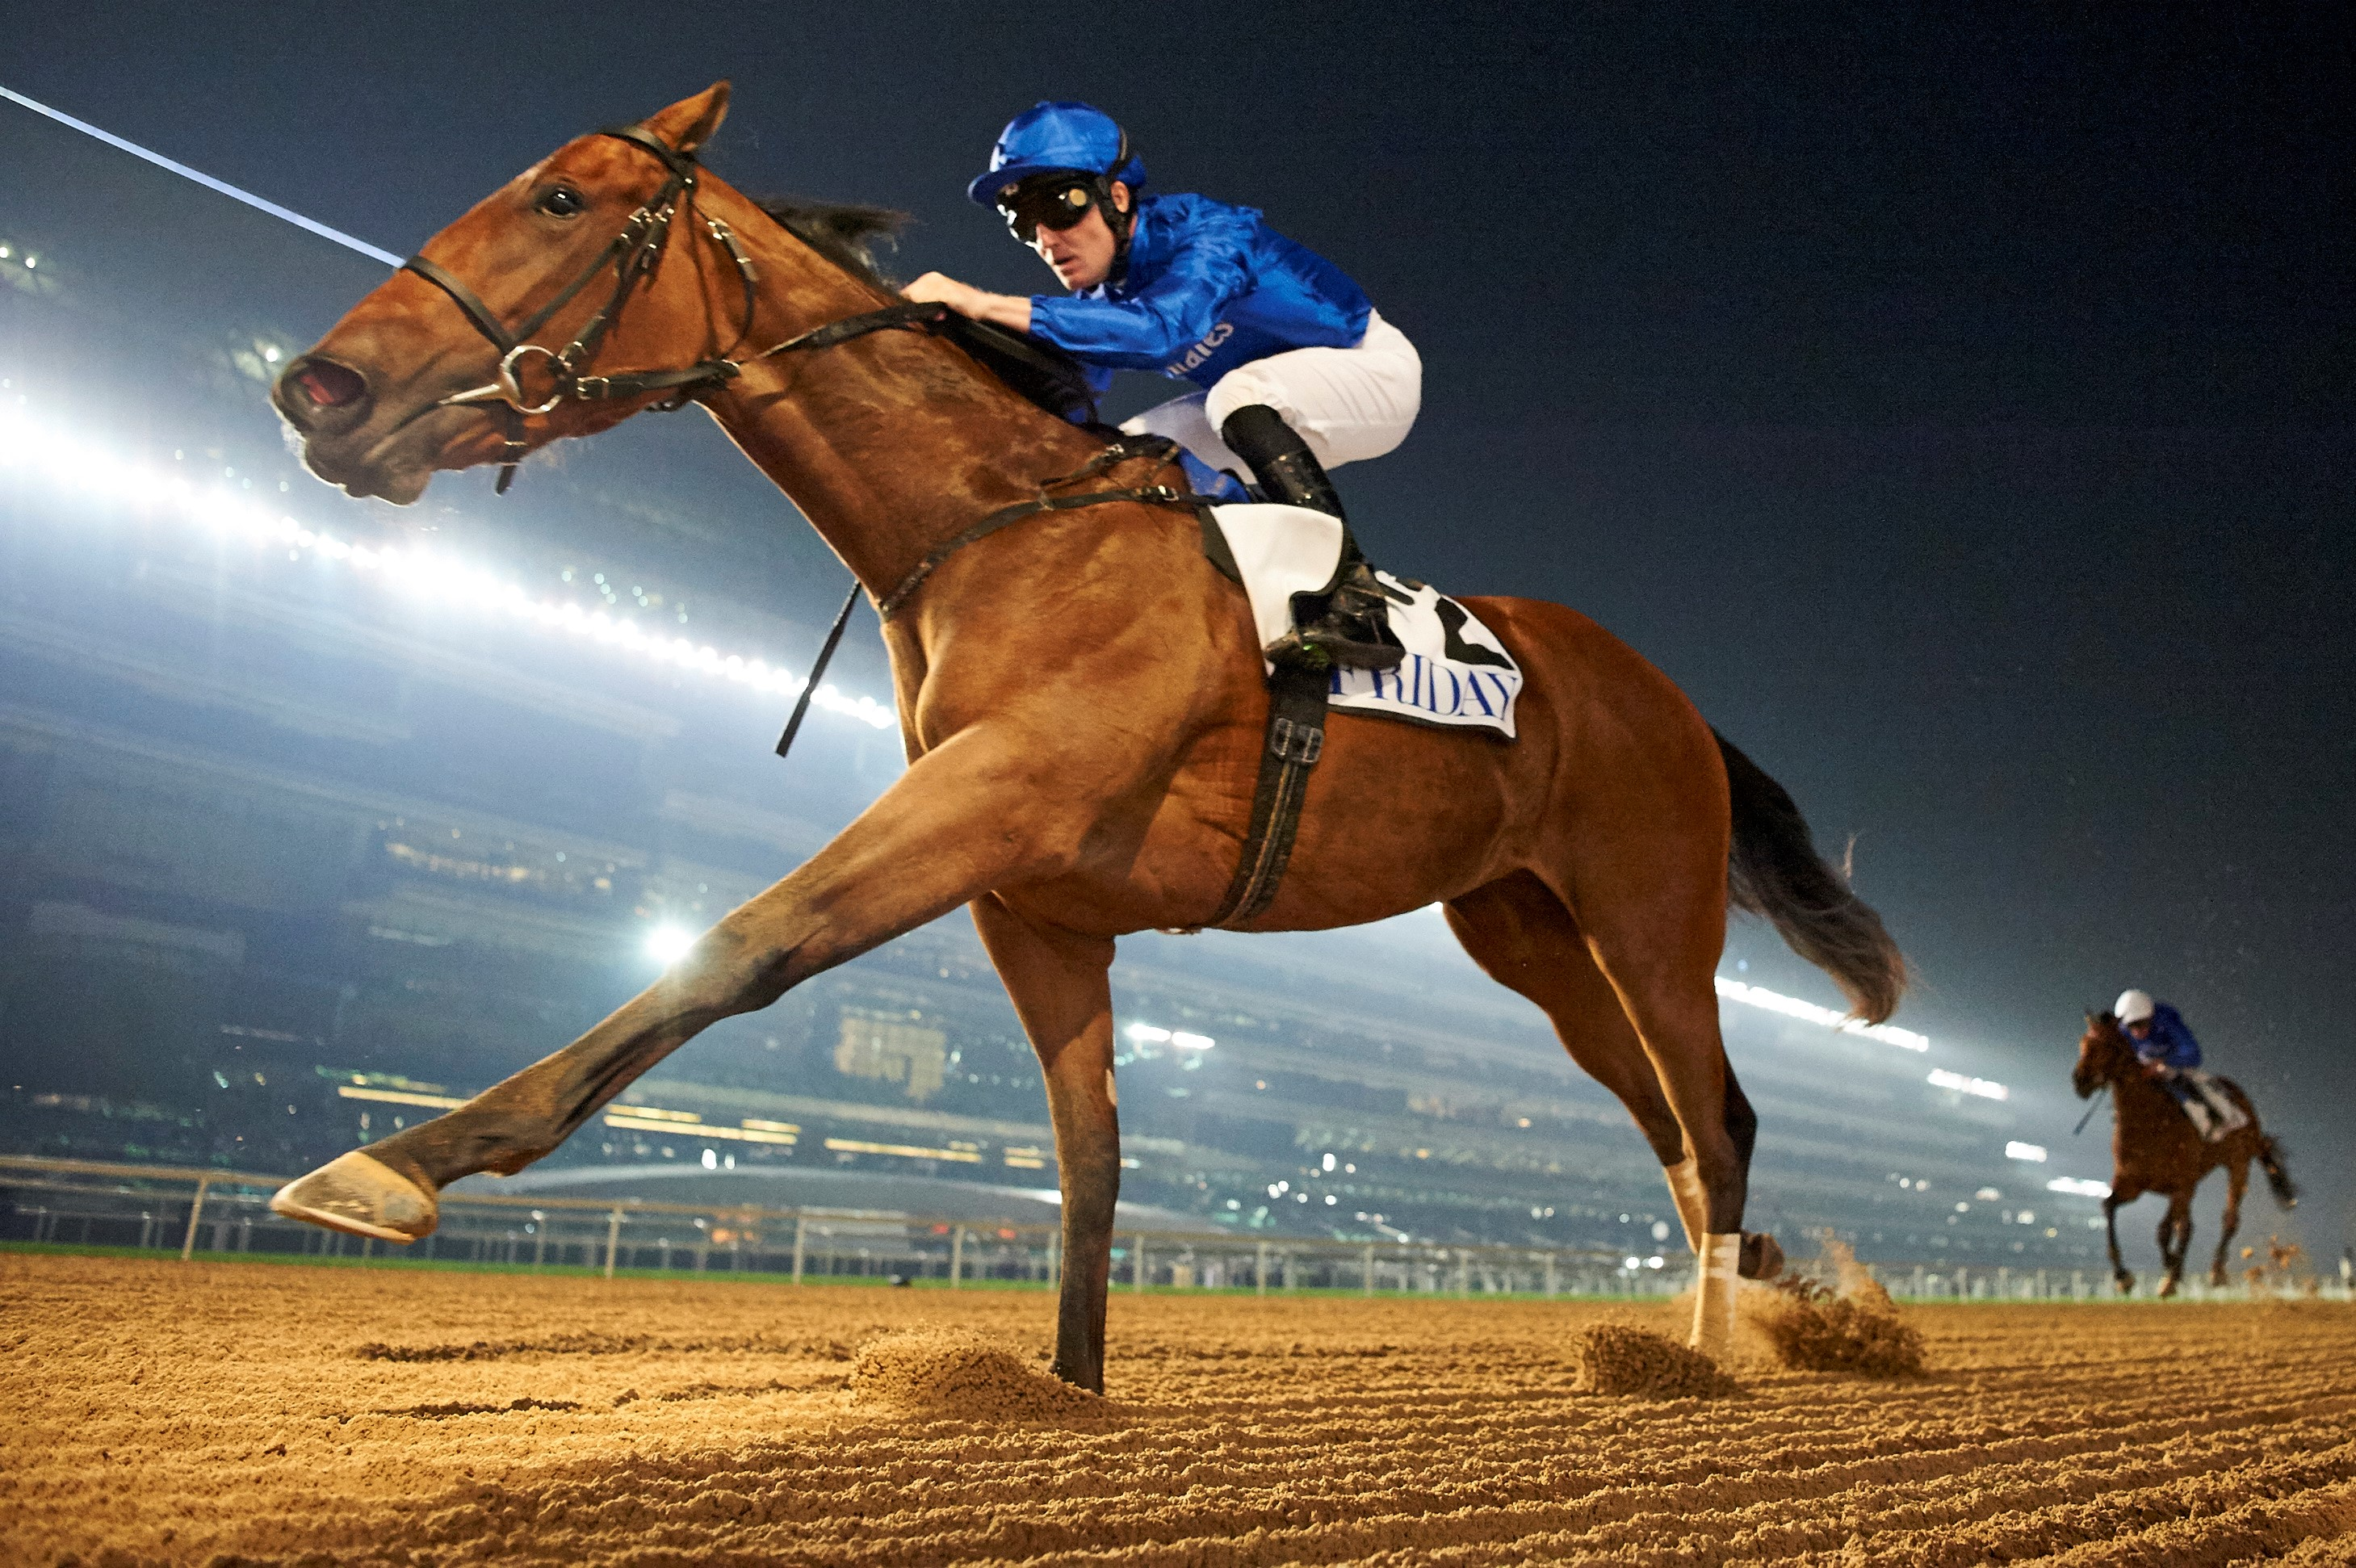 Winter Lightning wins at Meydan under Pat Cosgrave. (DRC)